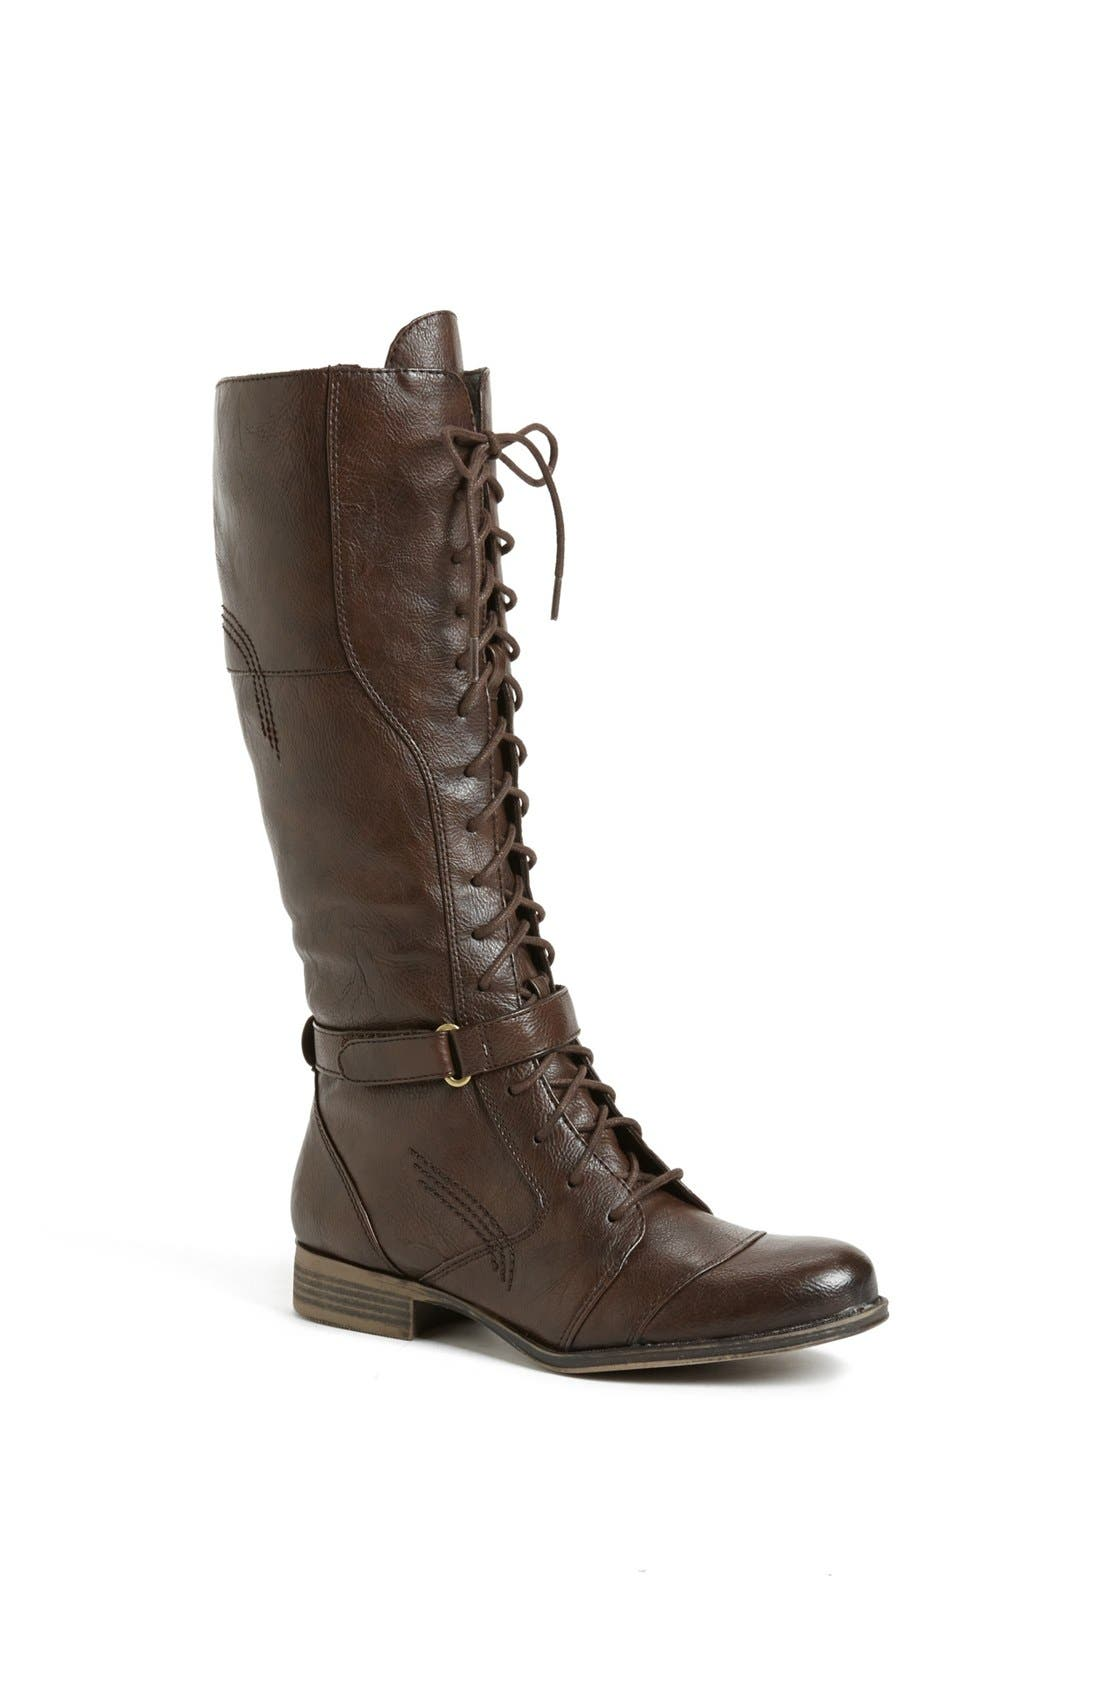 Alternate Image 1 Selected - Naturalizer 'Jakes' Boot (Wide Calf)